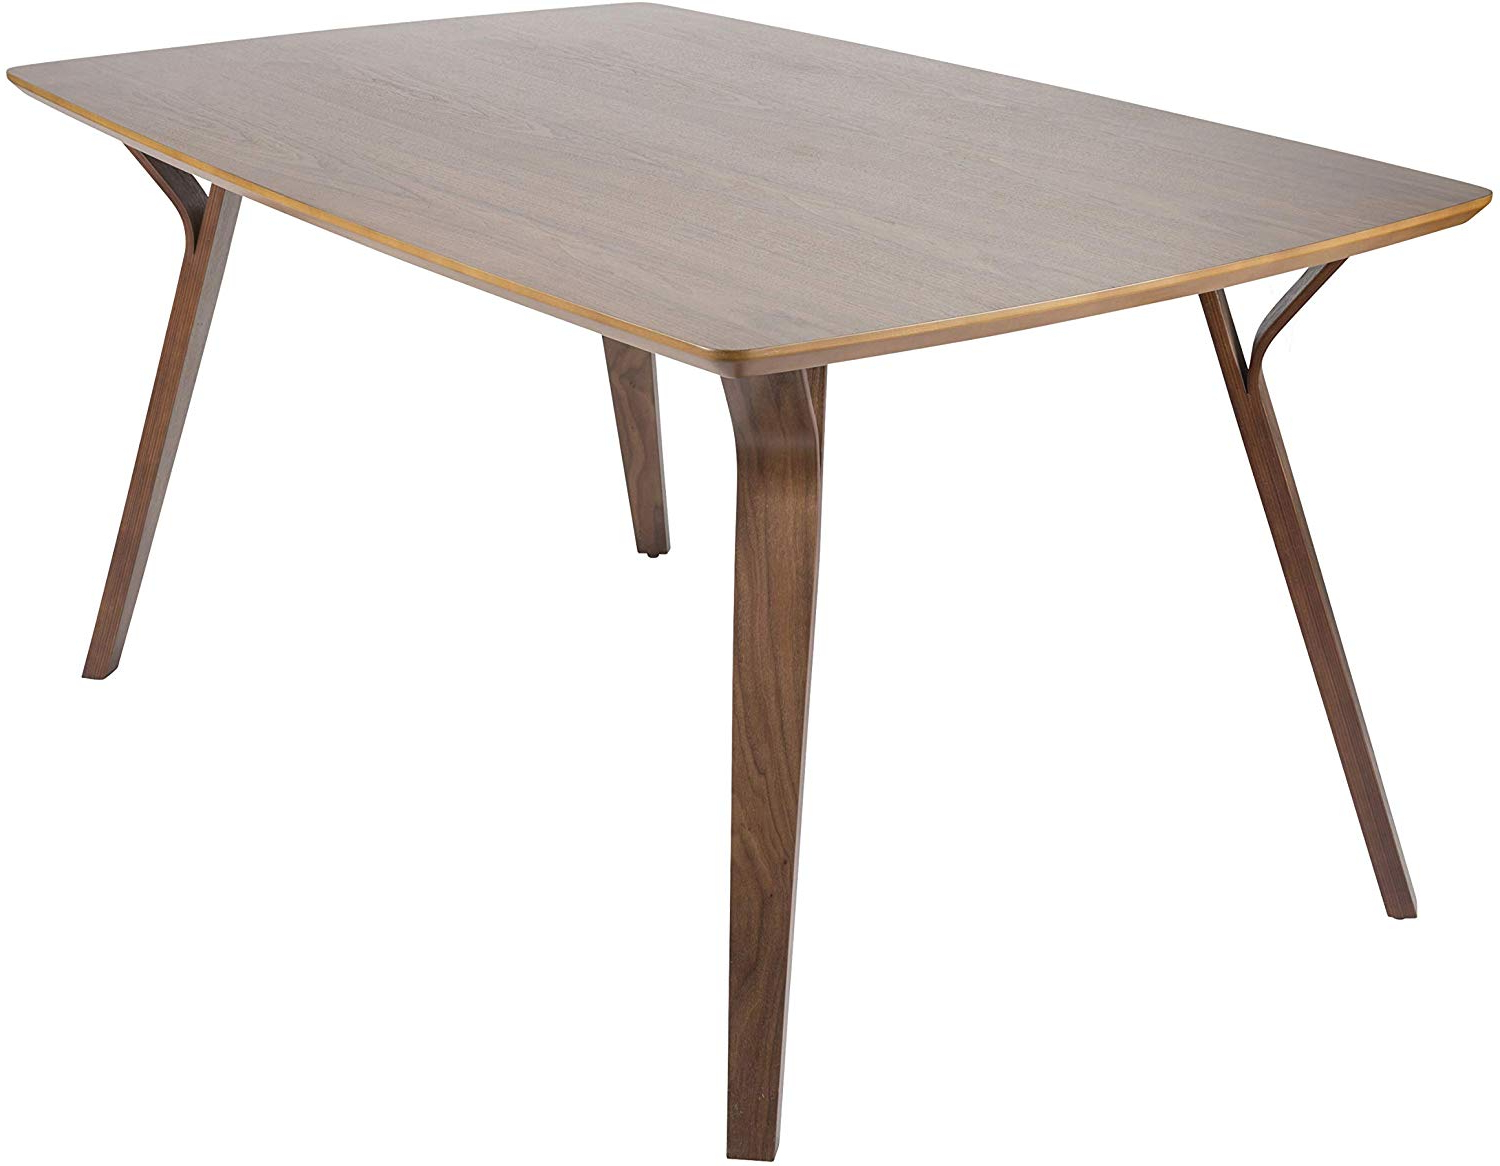 Amazon – Lumisource Mid Century Modern Dining Table In For Trendy Distressed Walnut And Black Finish Wood Modern Country Dining Tables (View 19 of 25)